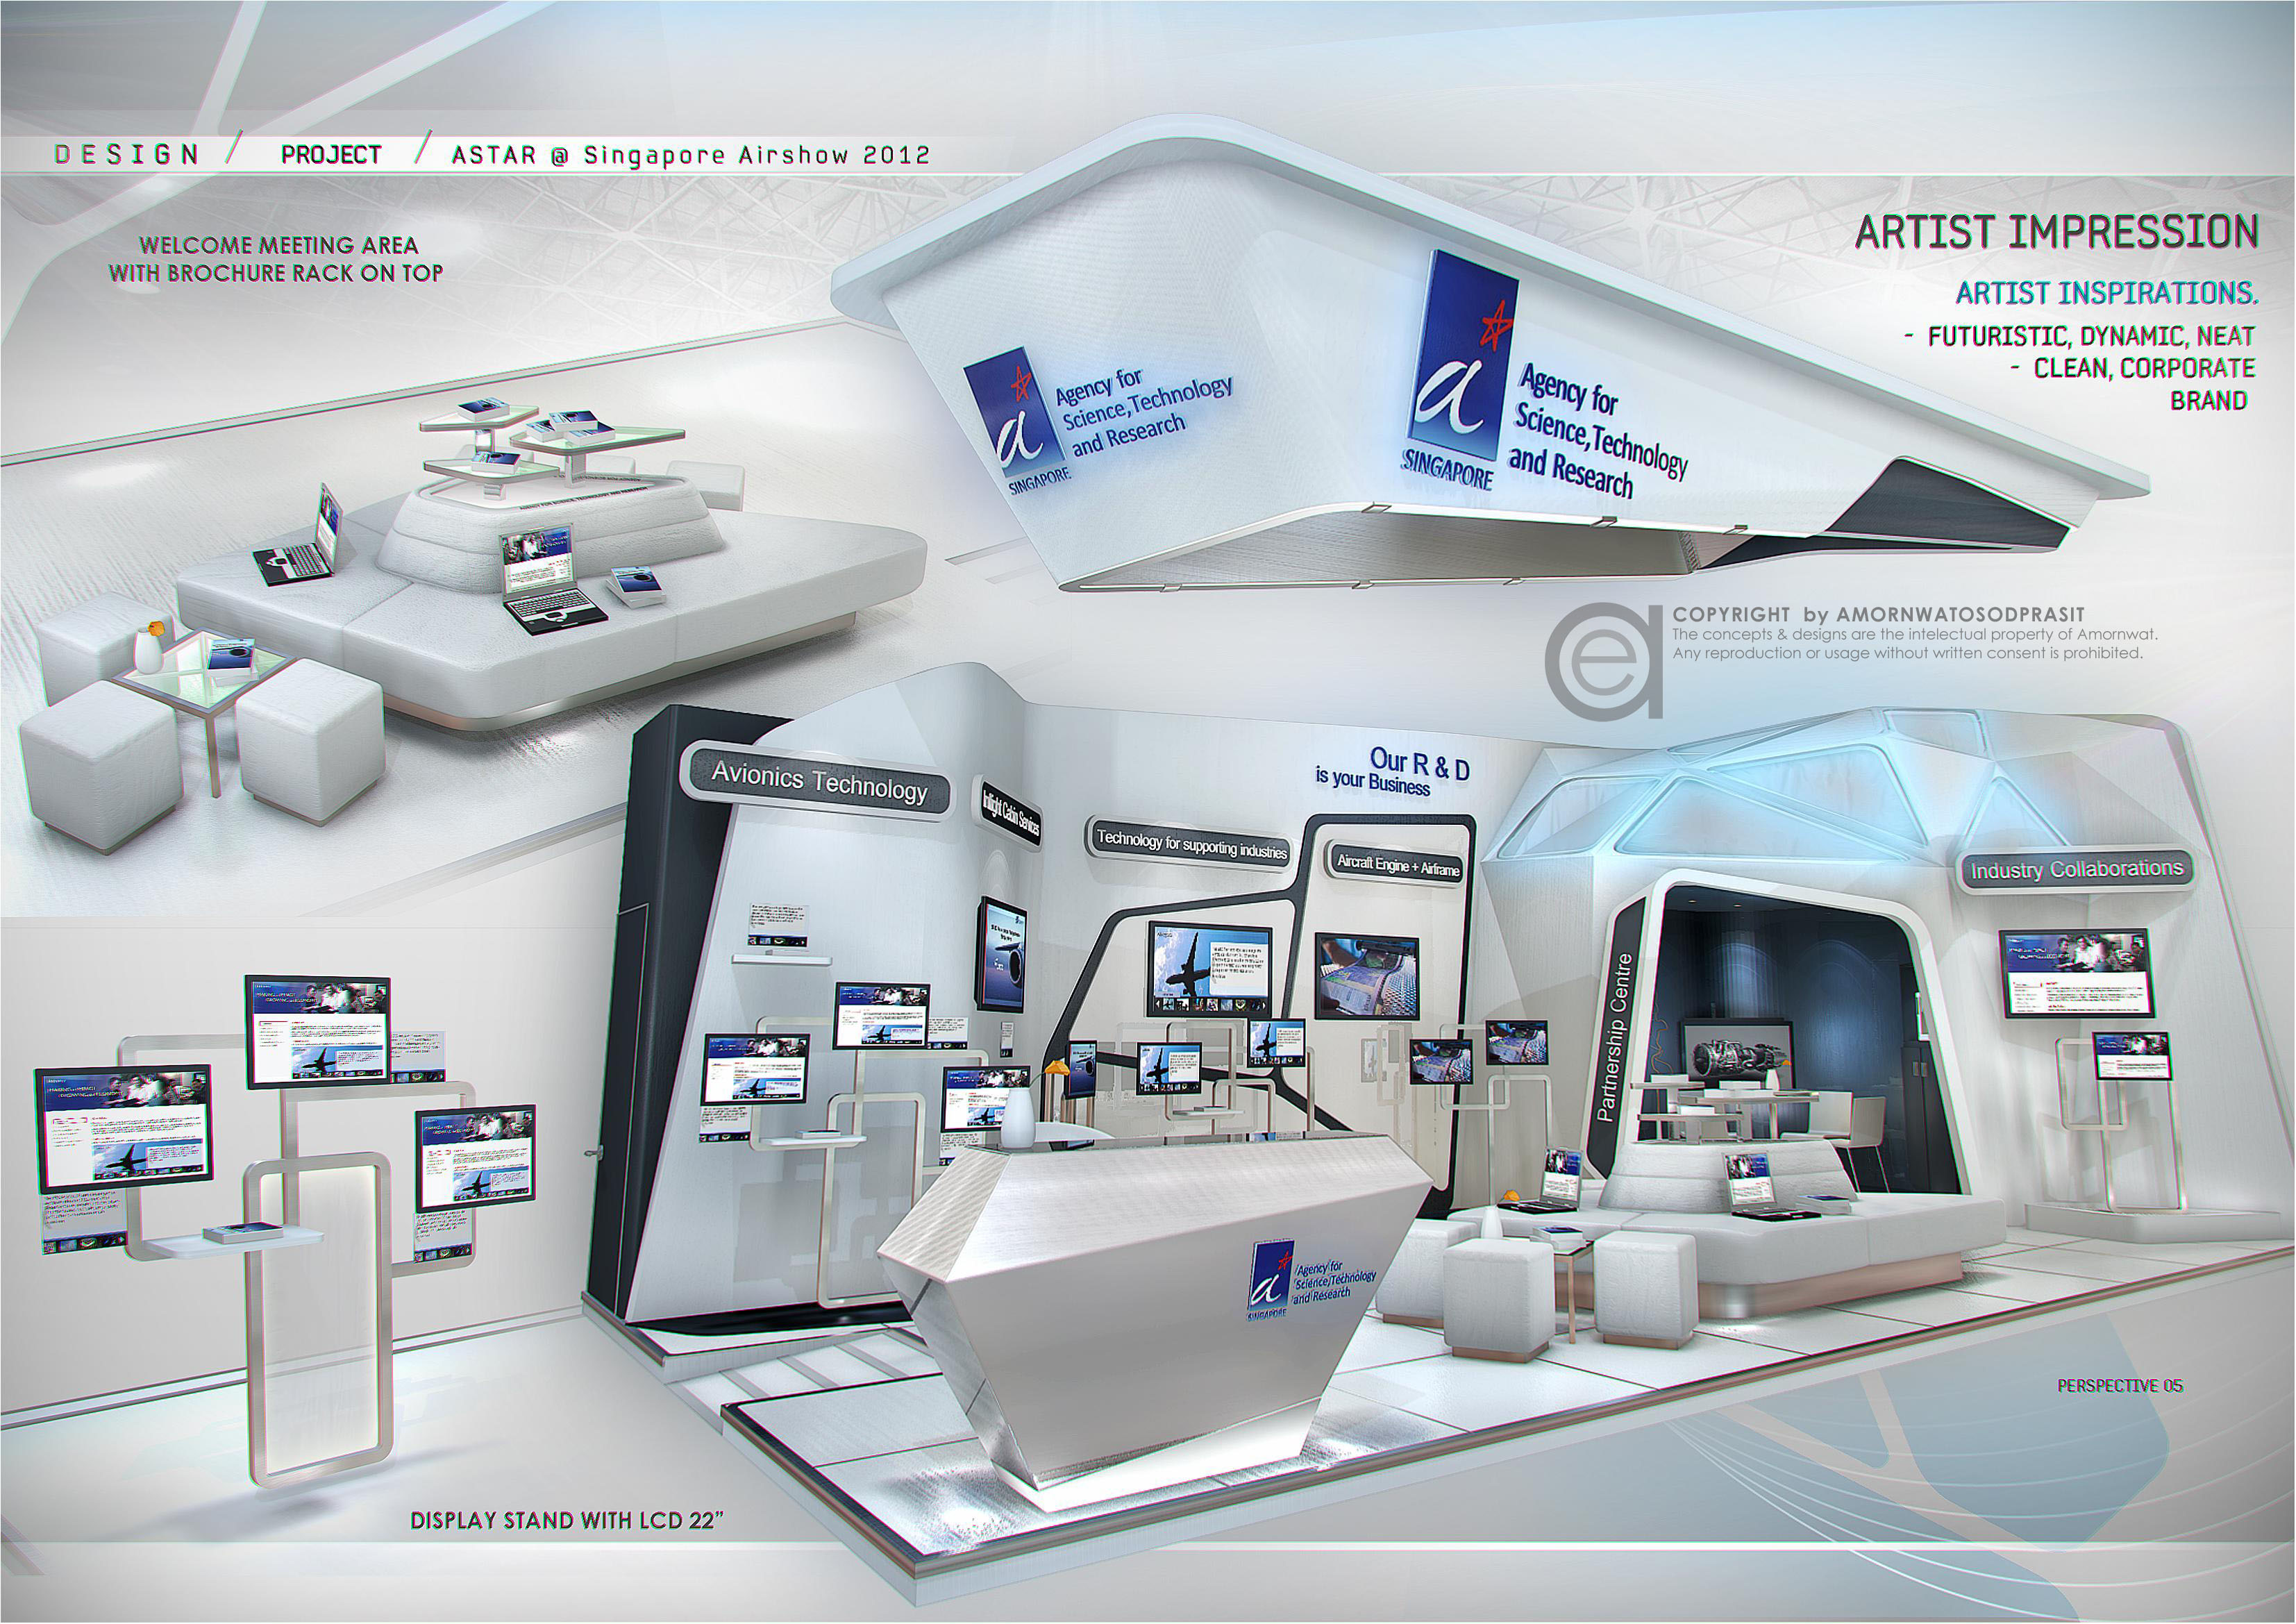 Exhibition Booth Layout : Exhibition design special booth by amornwat